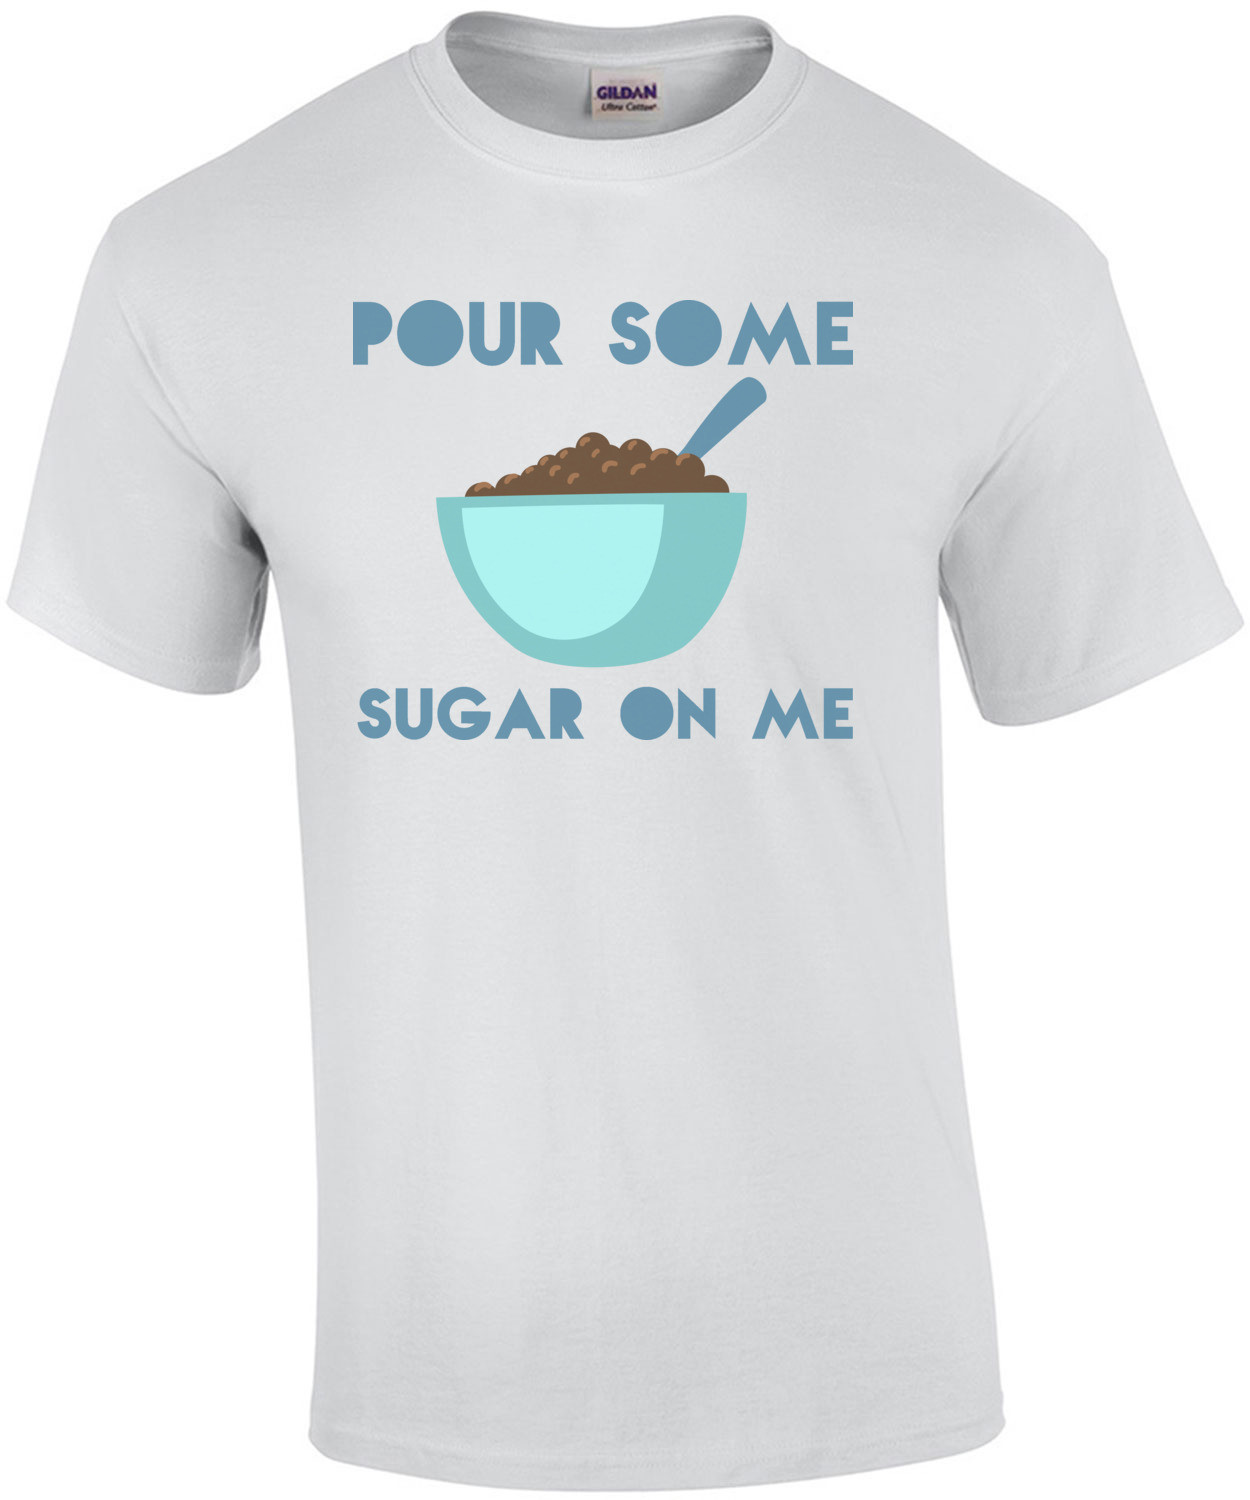 Pour some sugar on me - DEF LEPPARD parody t-shirt